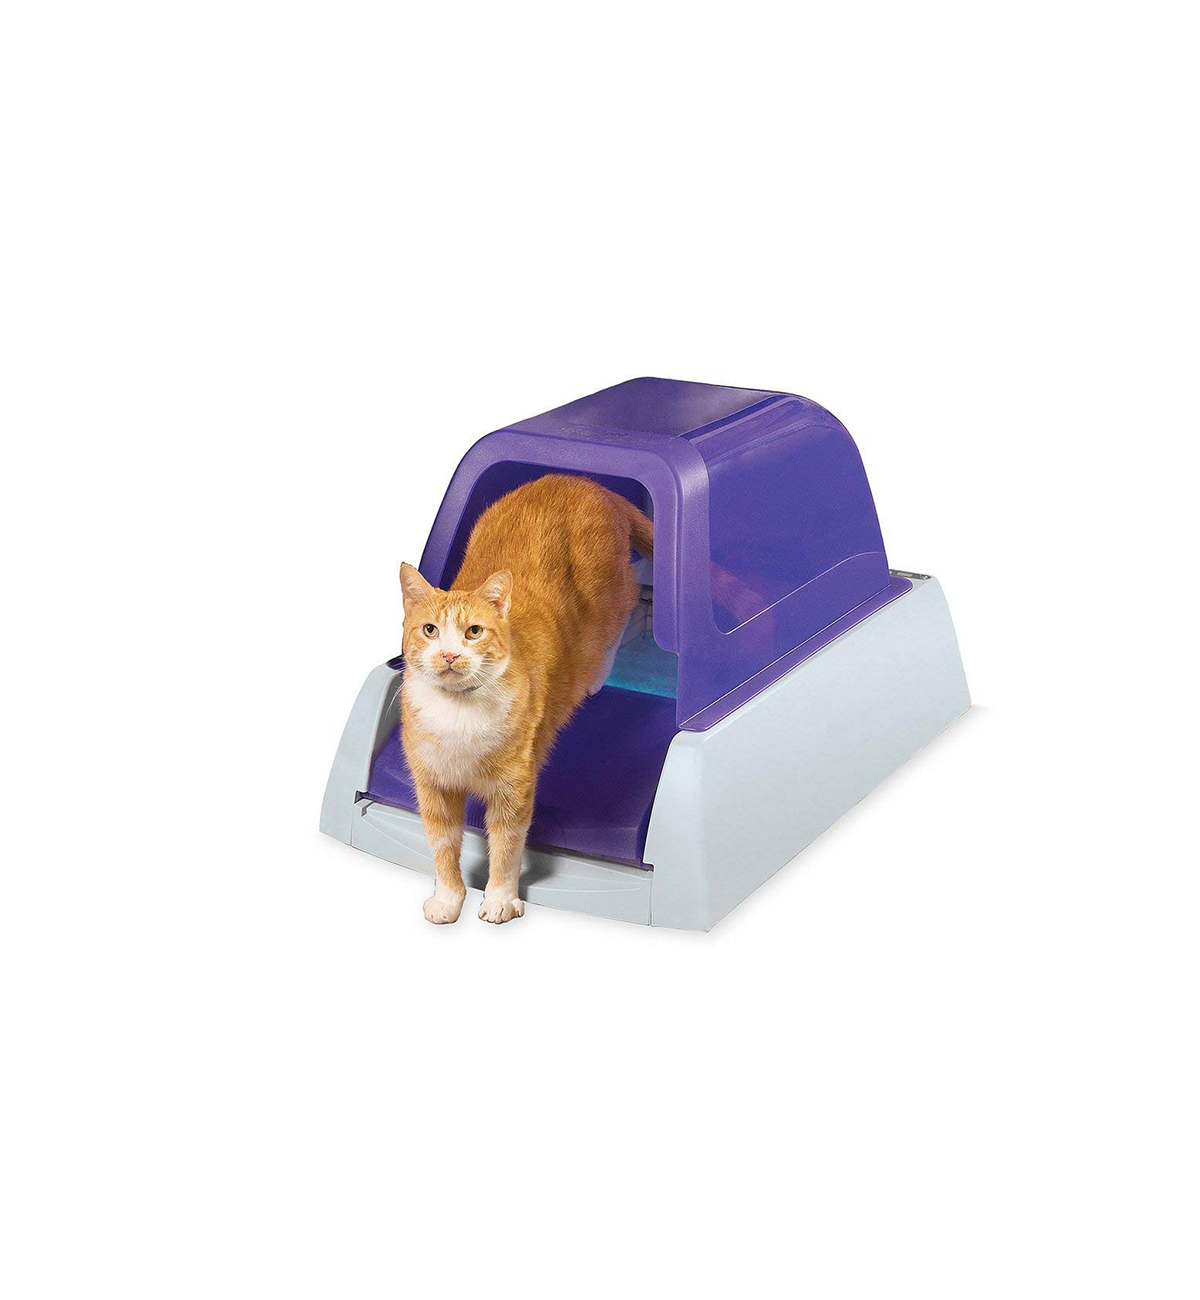 Time Saving Gadget, Self-Cleaning Litter Box